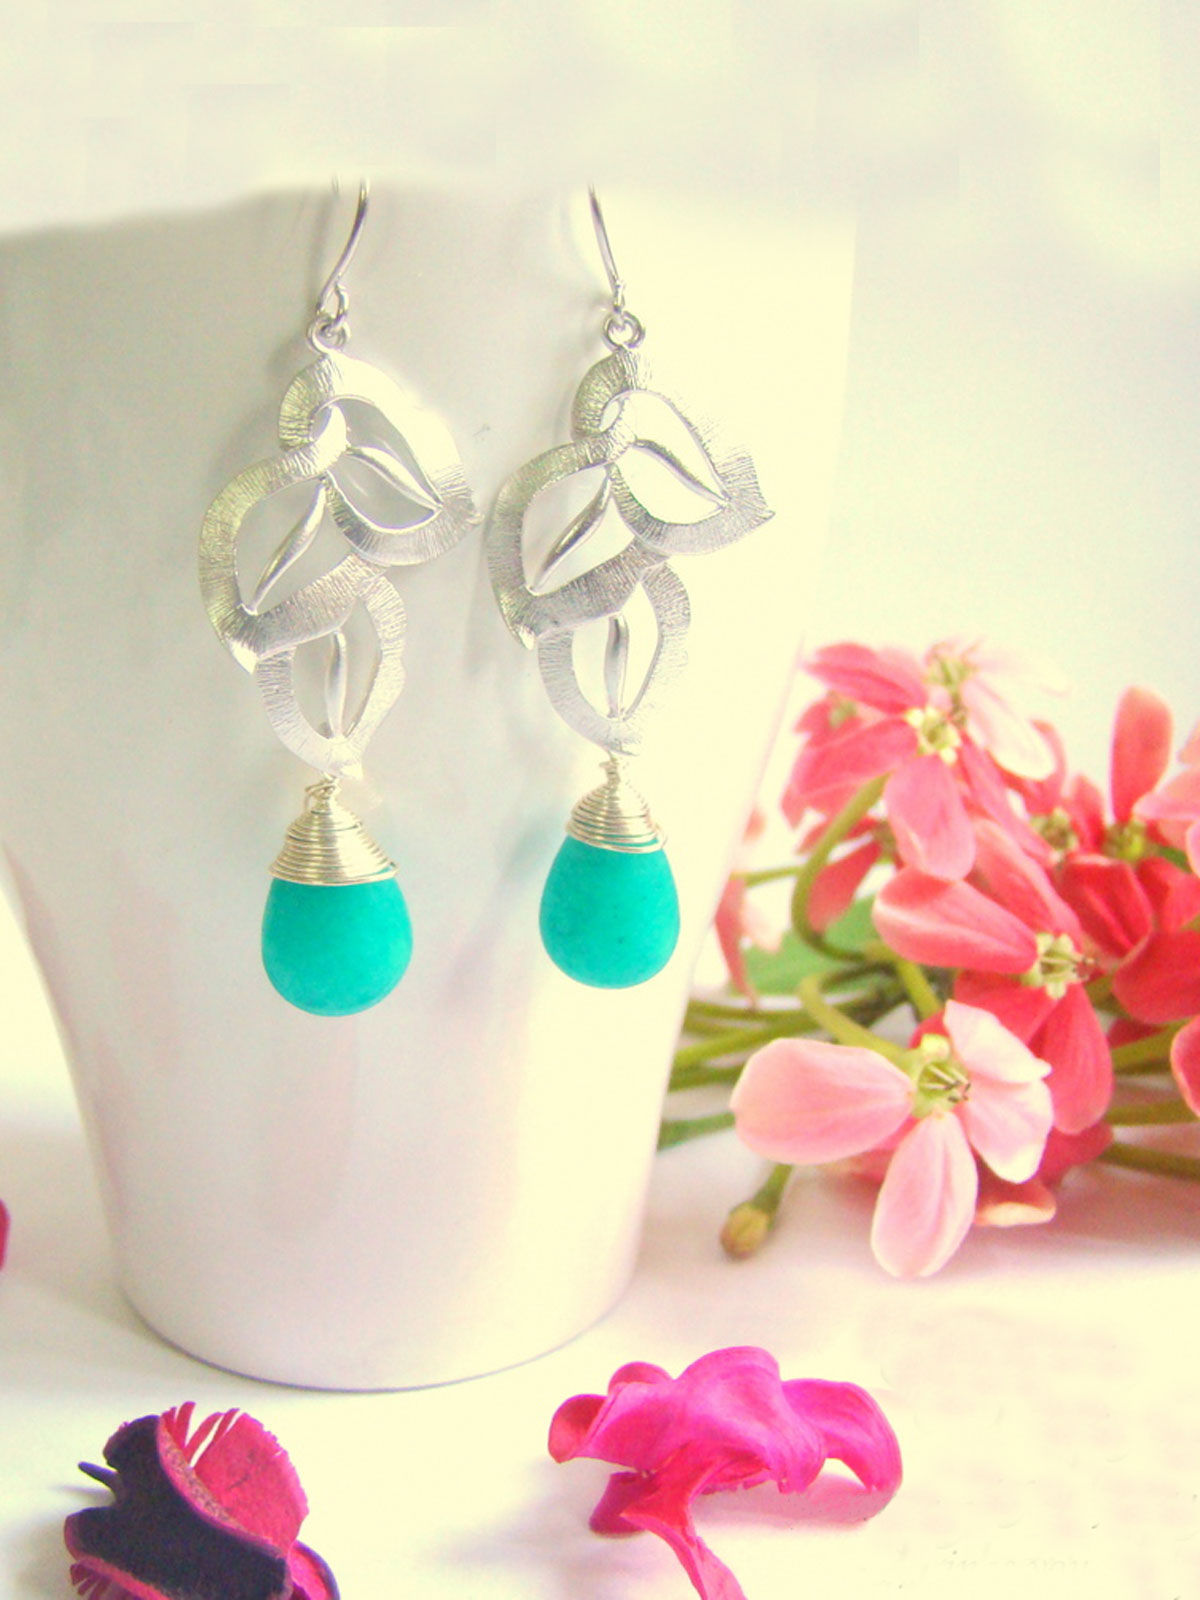 Leaf with Teal Drop Earrings